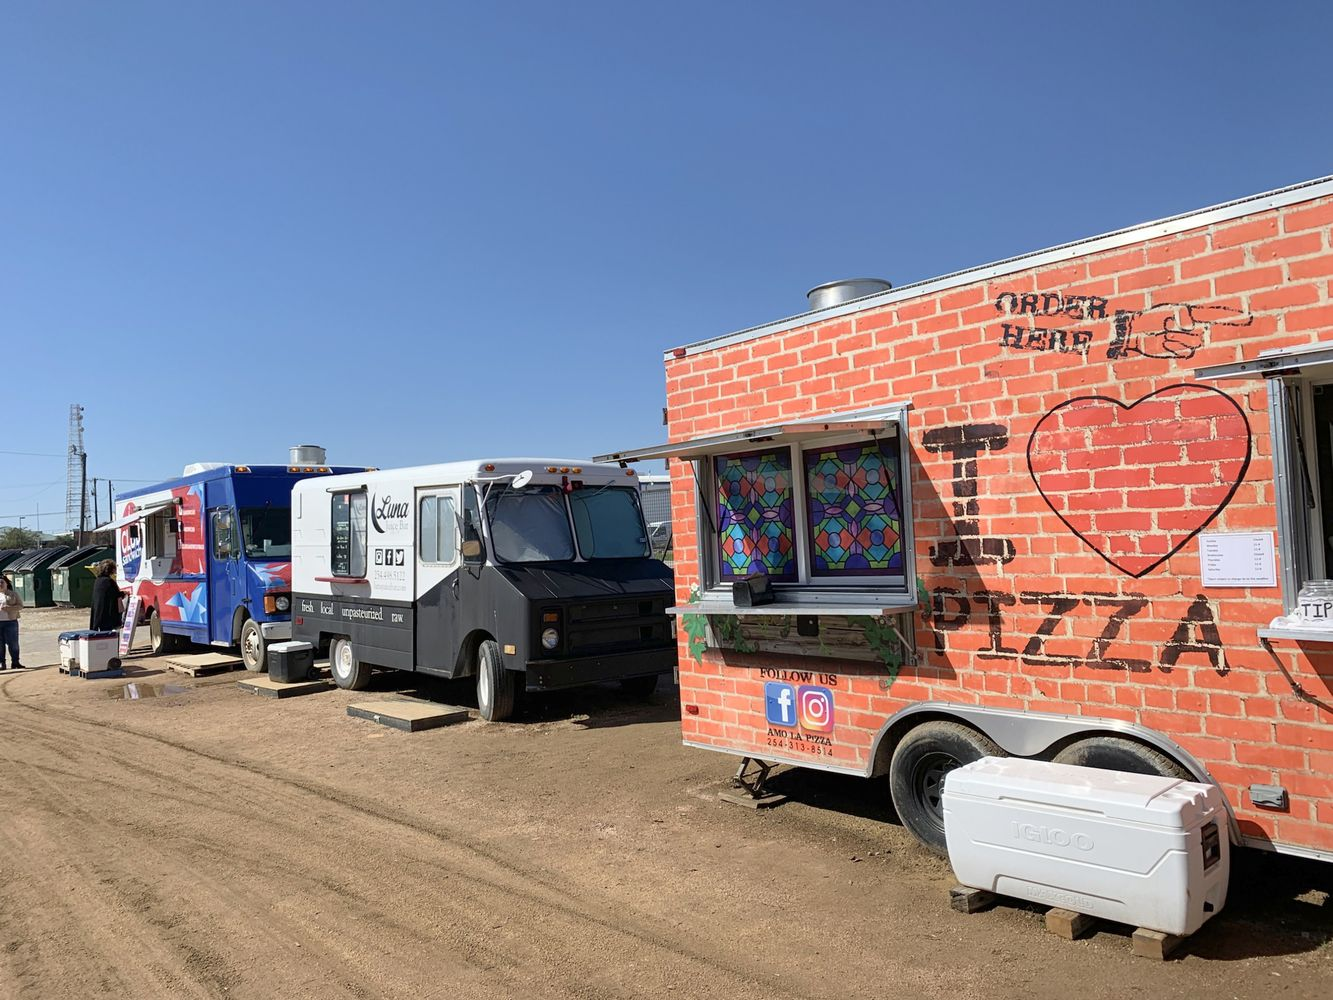 Food Trucks lined up at Magnolia Market